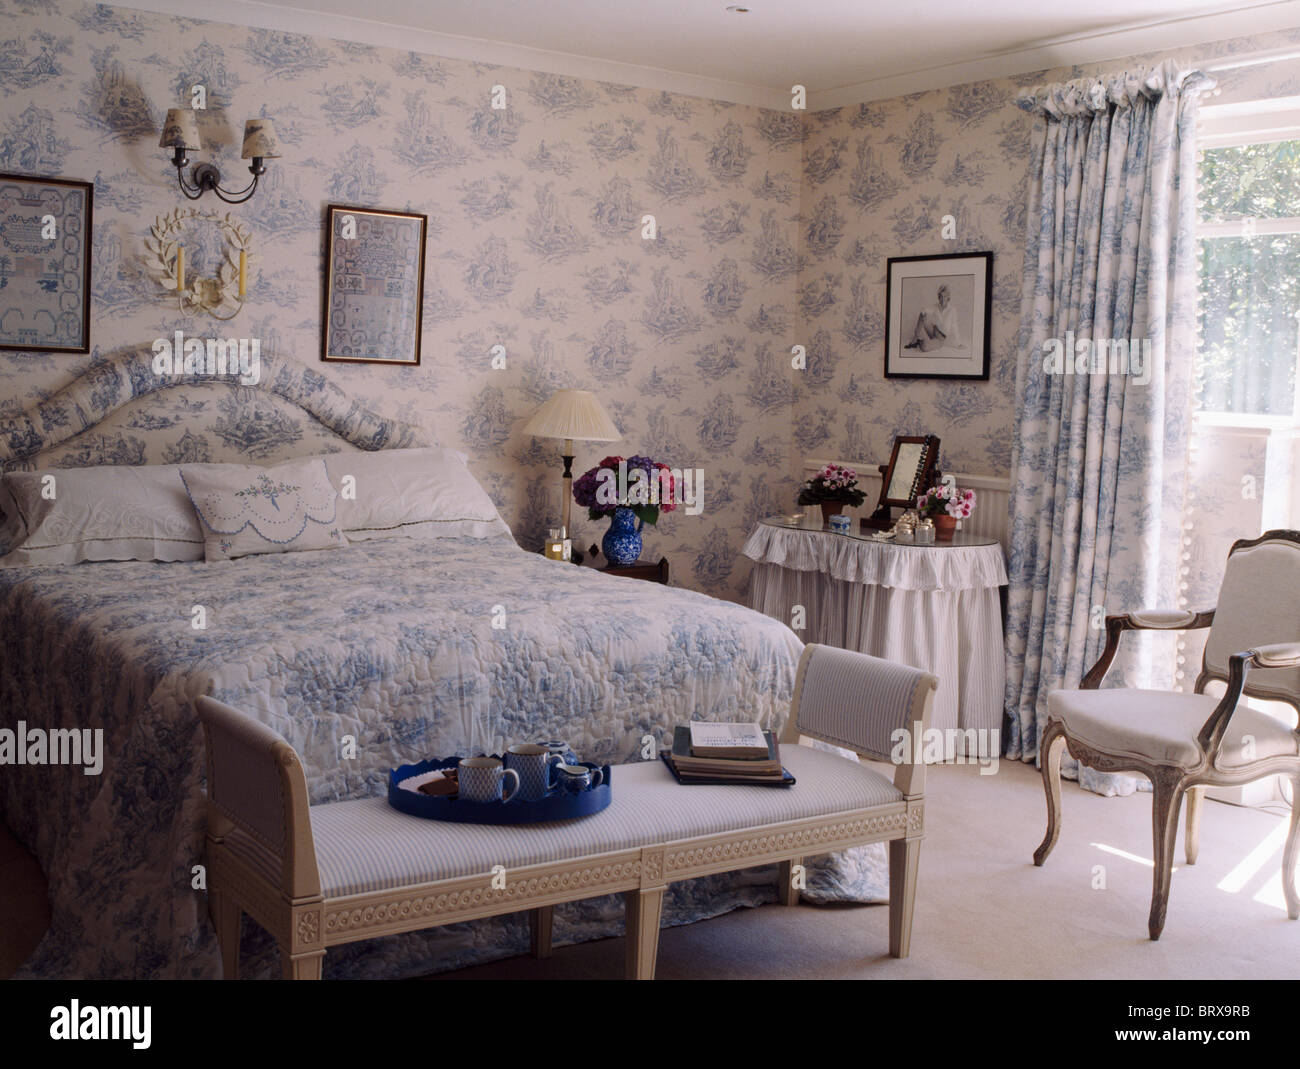 blau wei toile de jouy tapete mit passenden vorh nge und bettw sche im land schlafzimmer mit. Black Bedroom Furniture Sets. Home Design Ideas